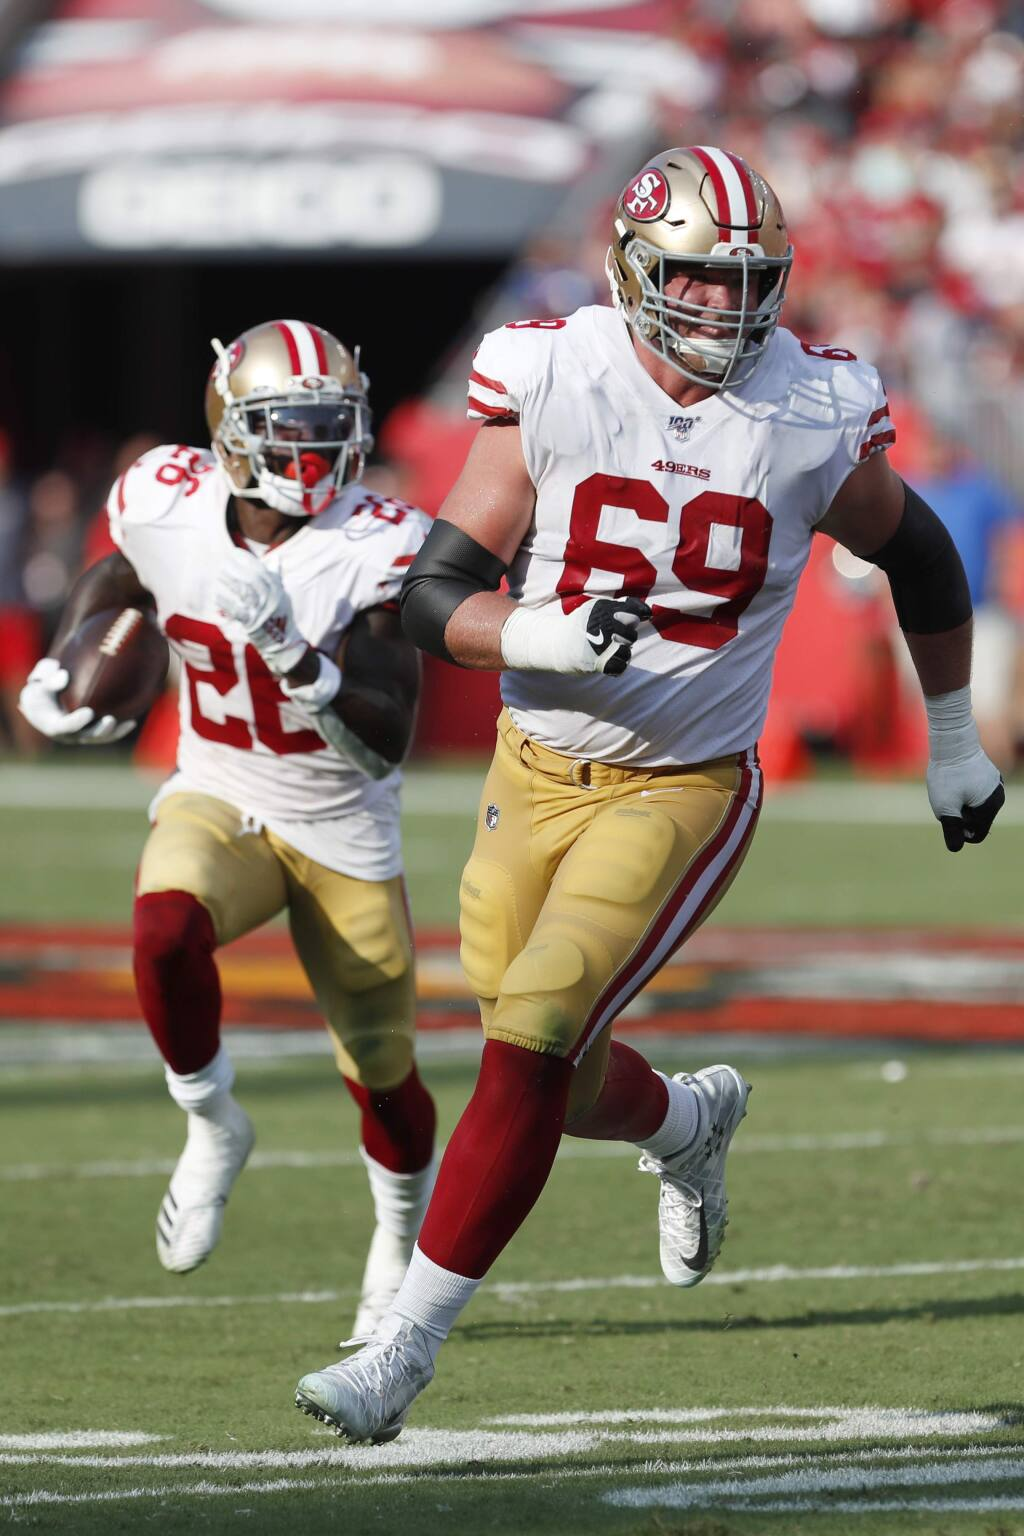 San Francisco 49ers offensive tackle Mike McGlinchey, right, looks to block for running back Tevin Coleman against the Tampa Bay Buccaneers during the first half, Sunday, Sept. 8, 2019, in Tampa, Fla. (AP Photo/Mark LoMoglio)